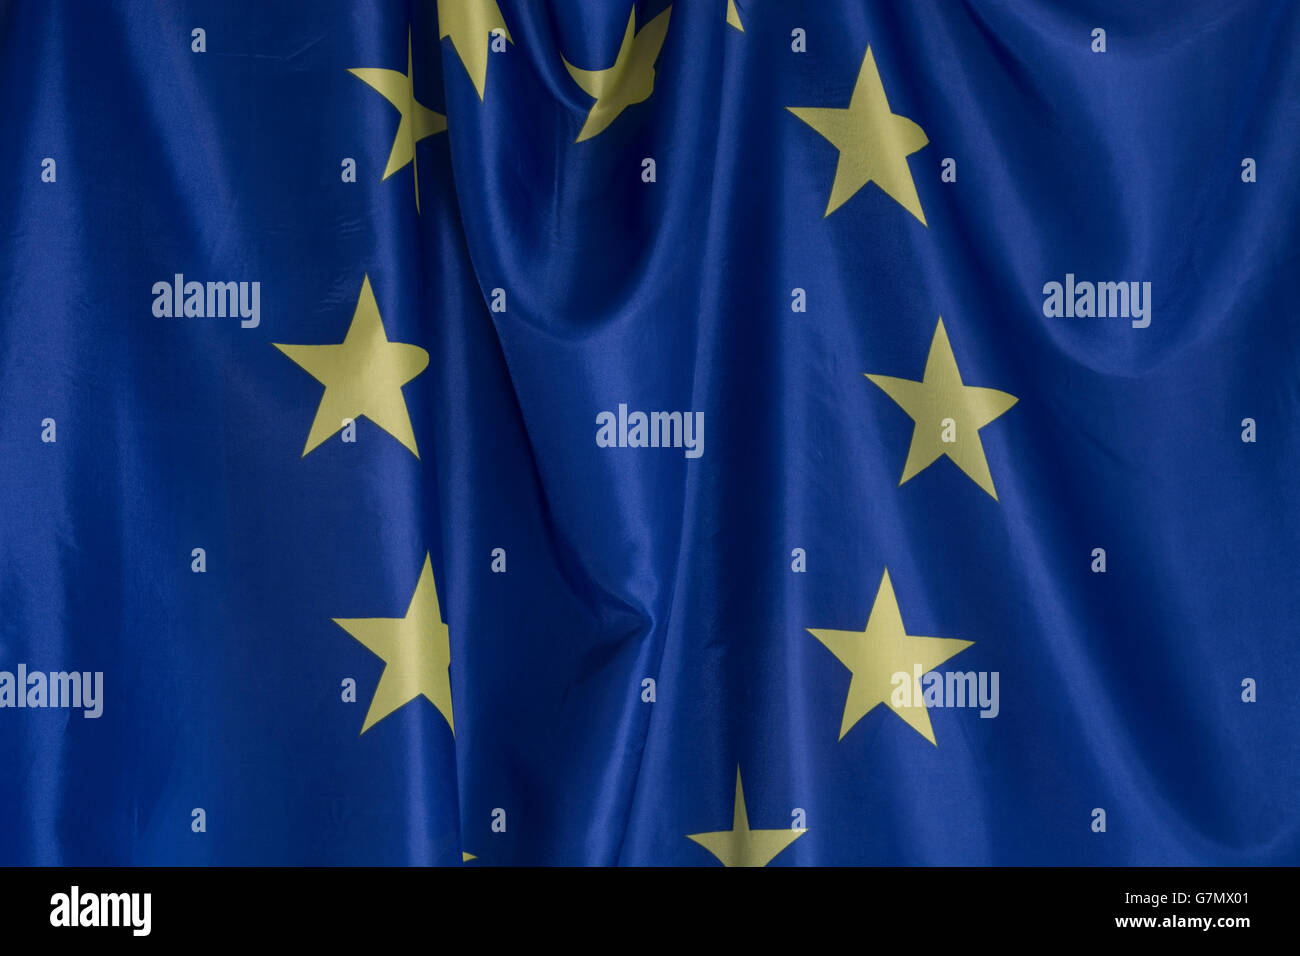 Brexit concept. Crumpled EU European community flag as visual metaphor for disunity, turmoil and the UK leaving - Stock Image